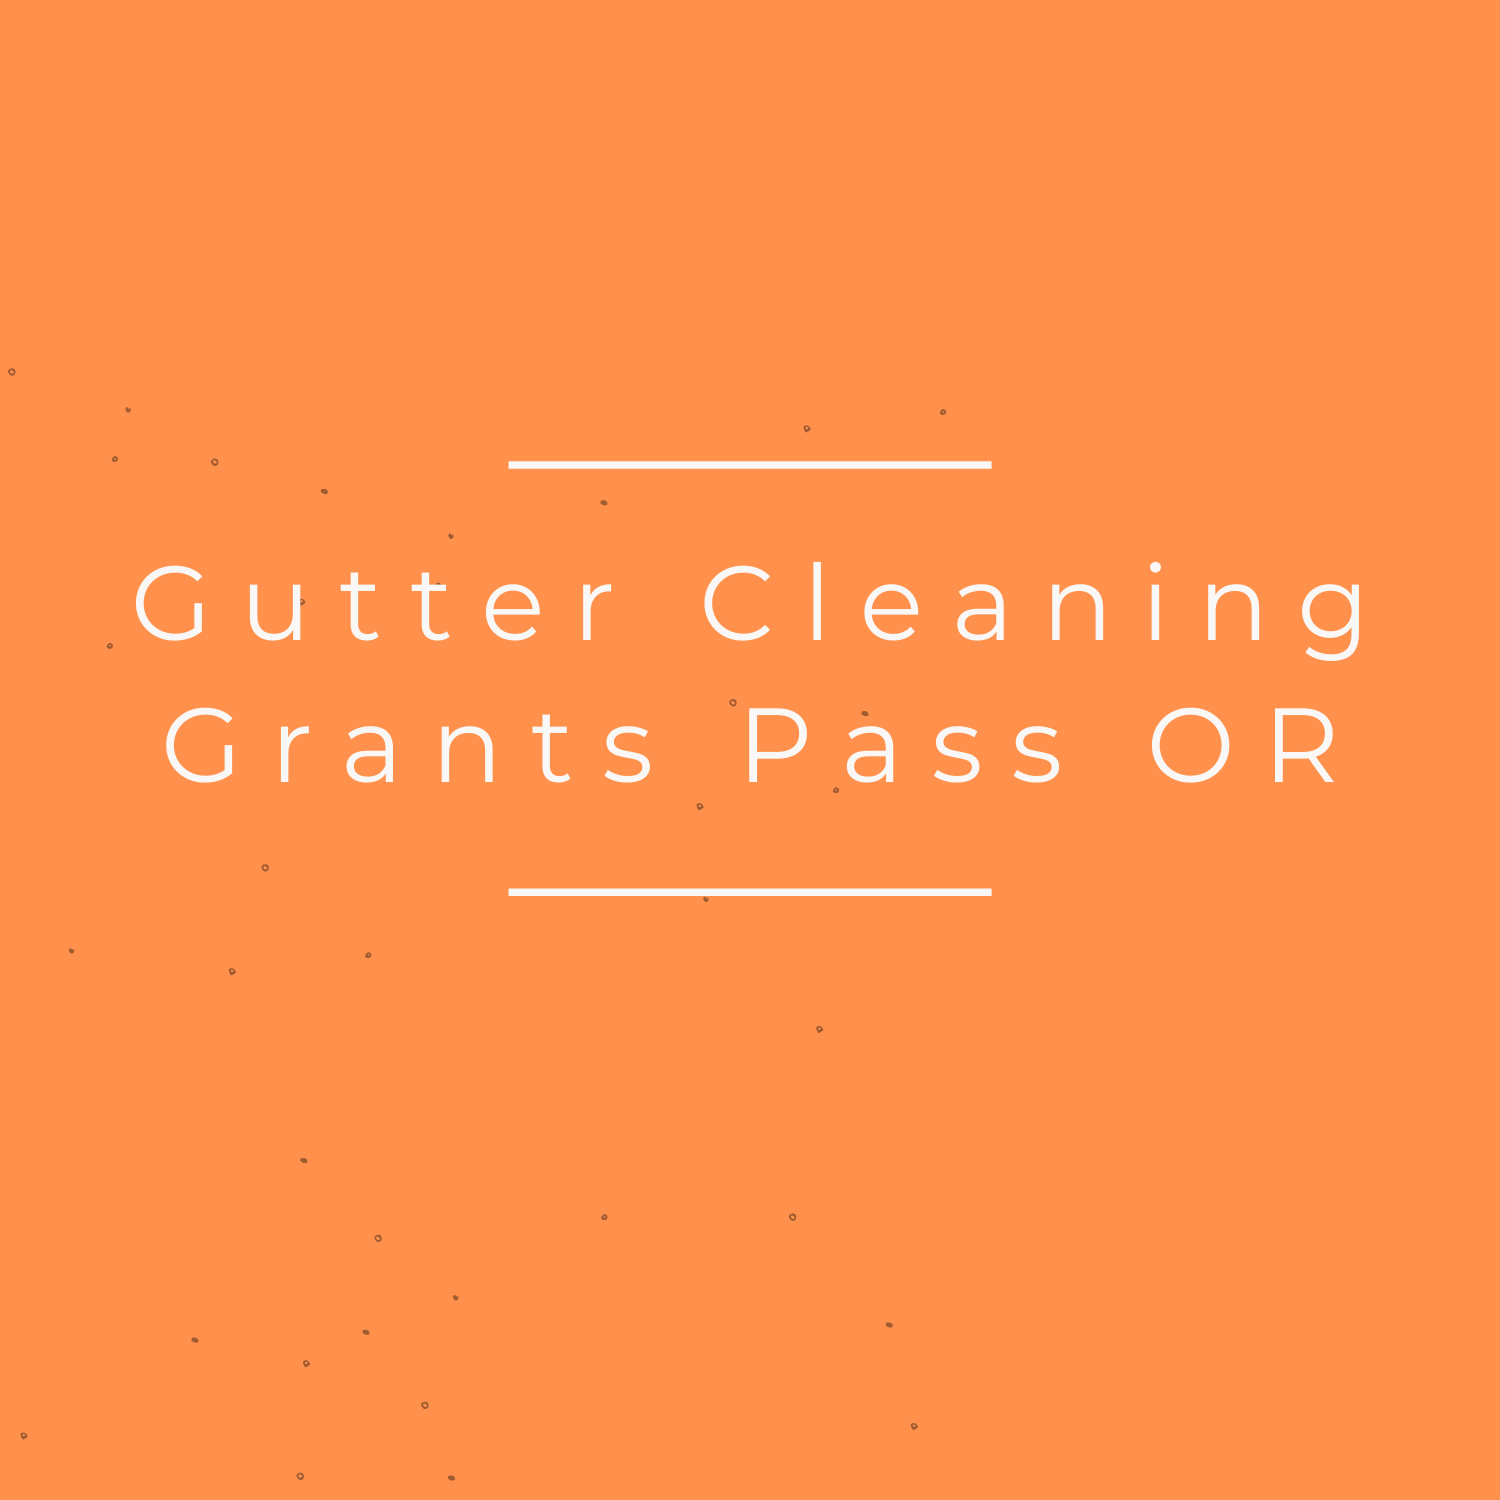 Gutter Ceaning Grants Pass OR